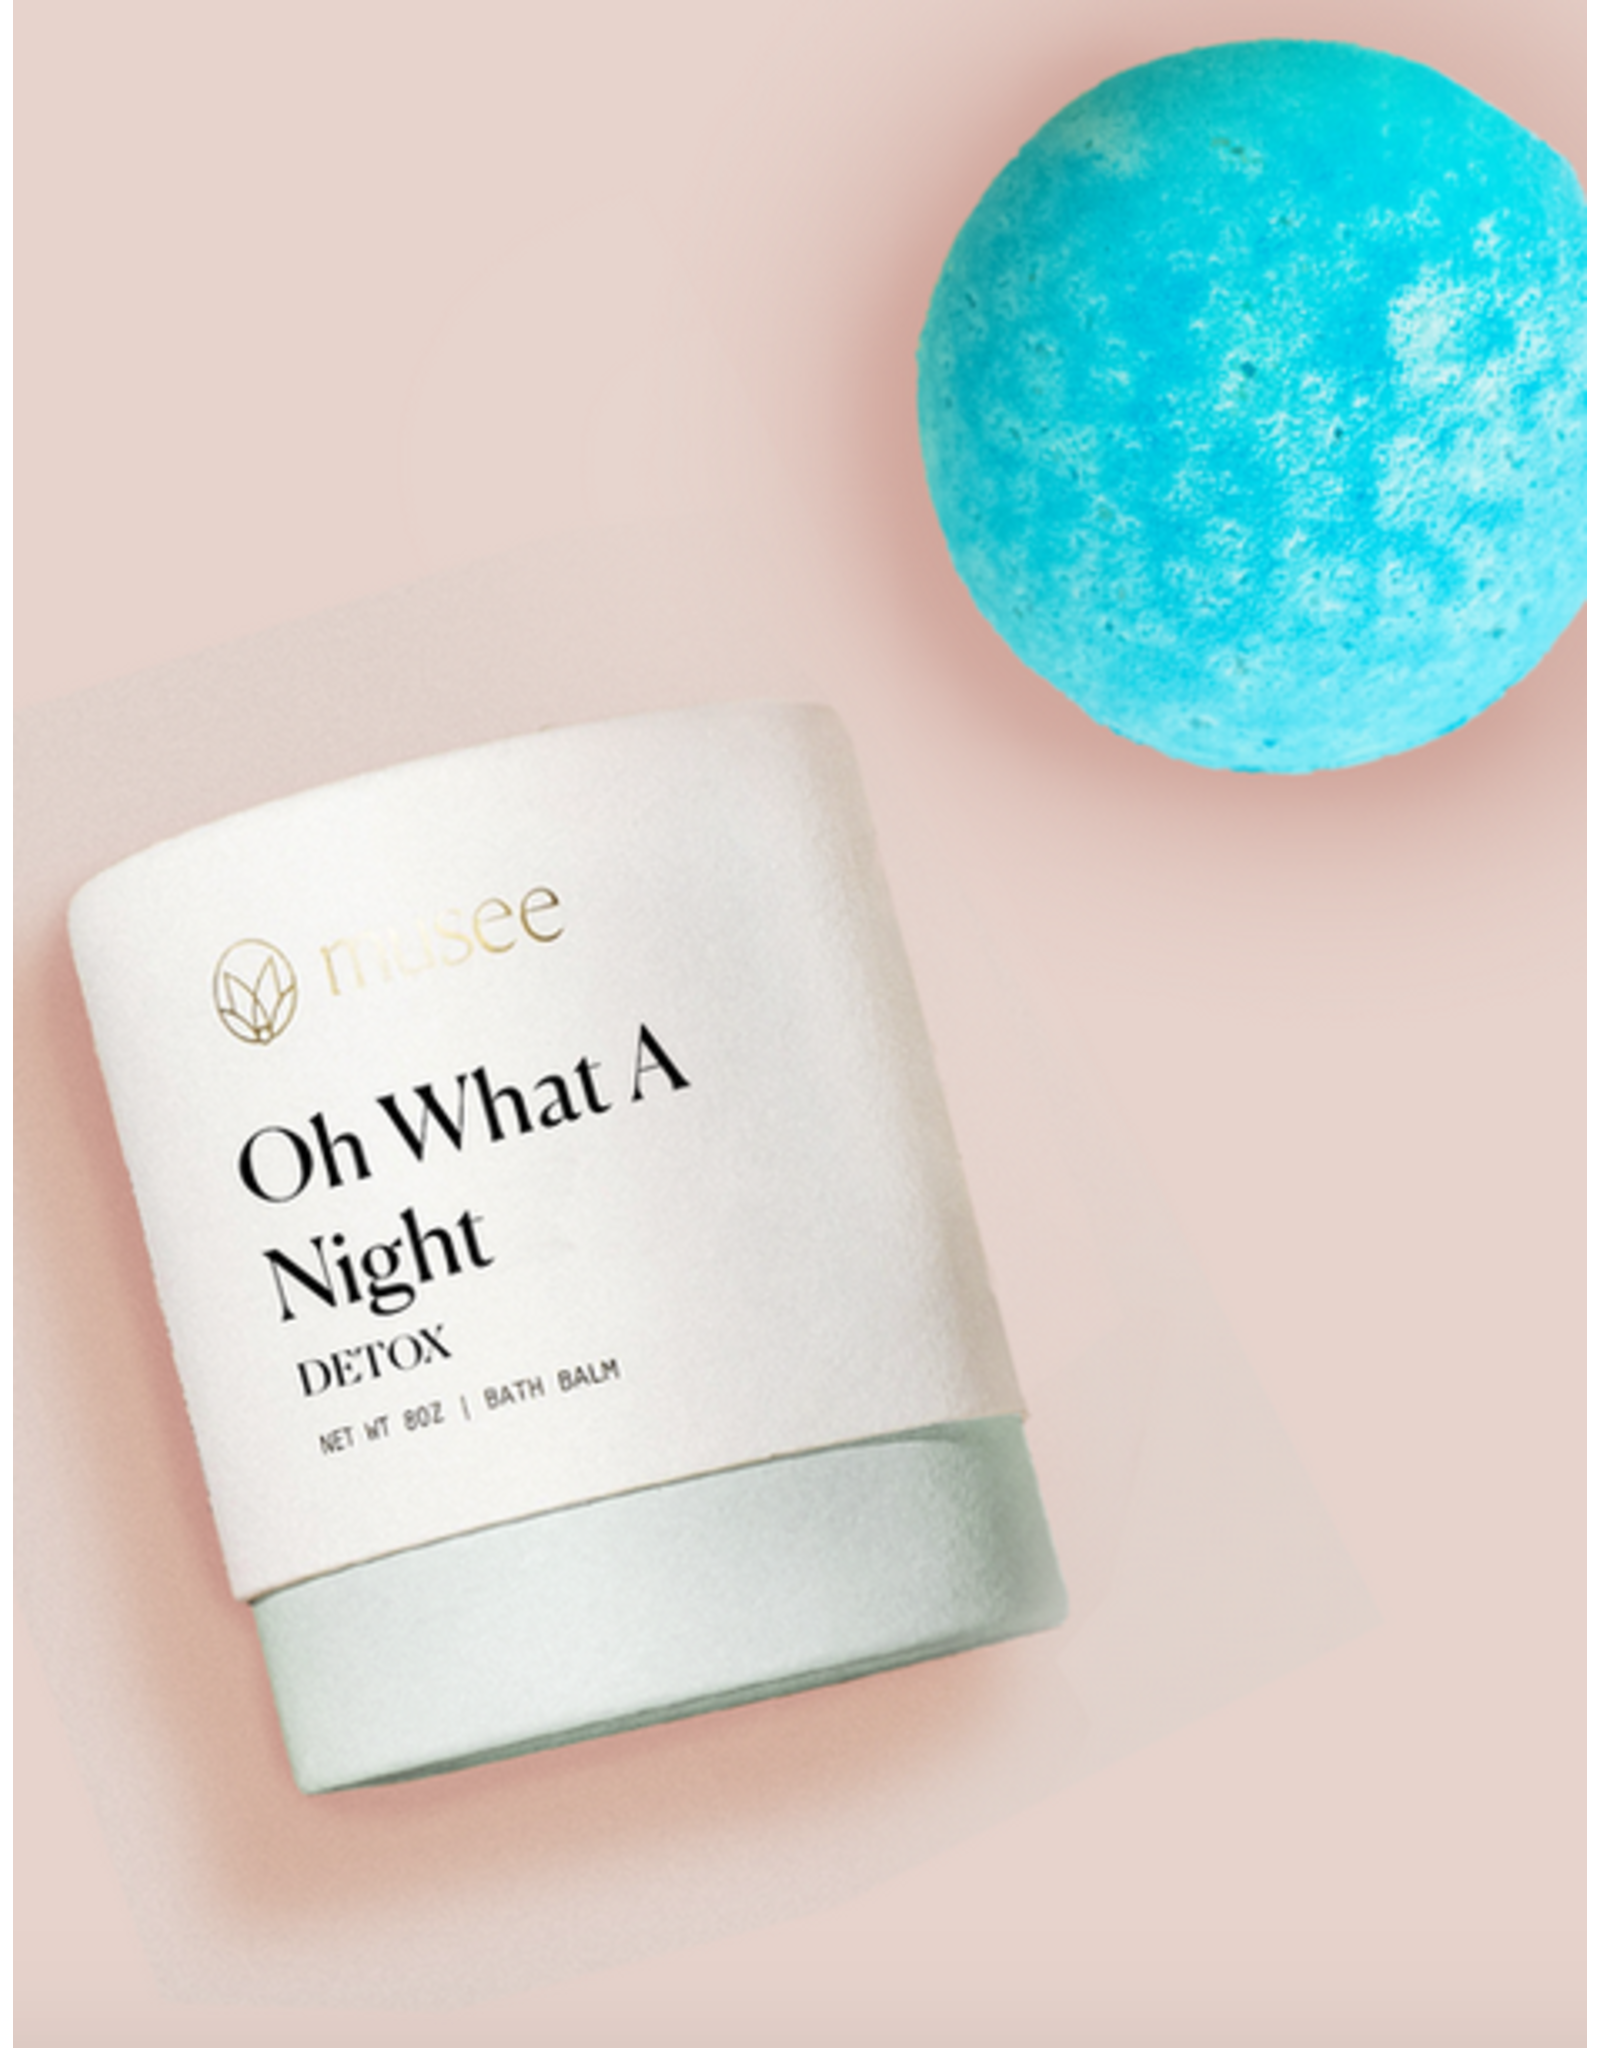 Musee Oh What A Night Bath Balm